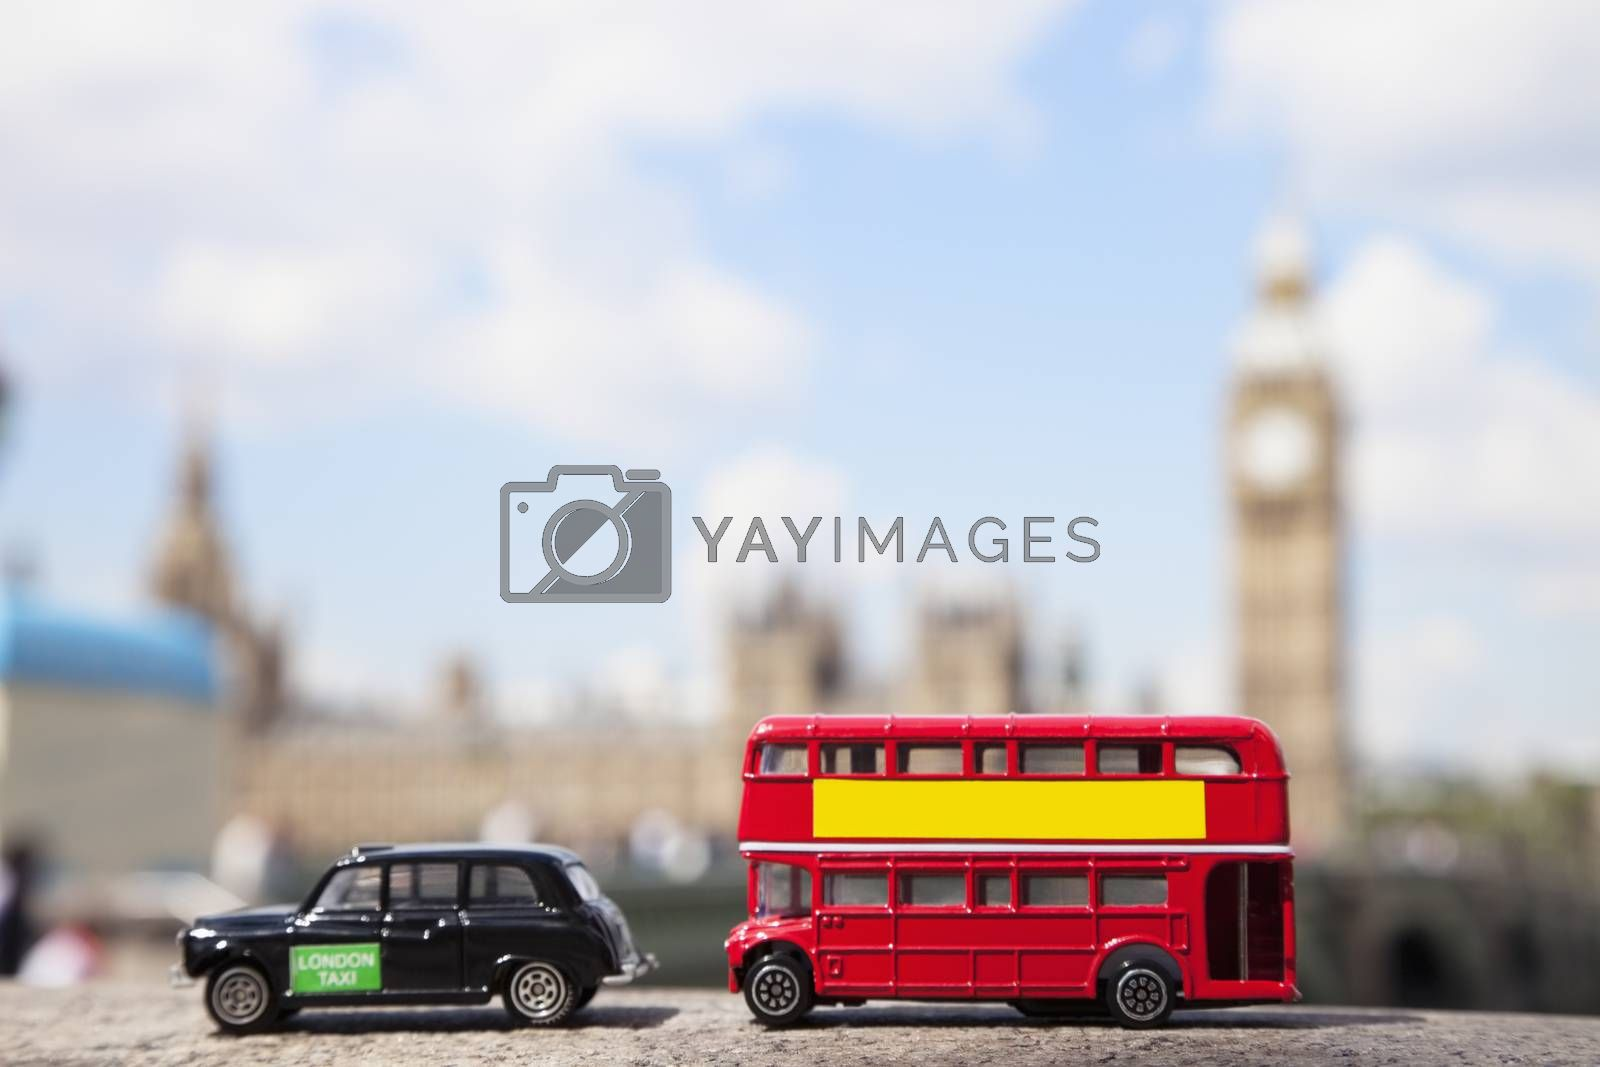 Royalty free image of Public transport figurines with Big Ben Tower in the background by moodboard